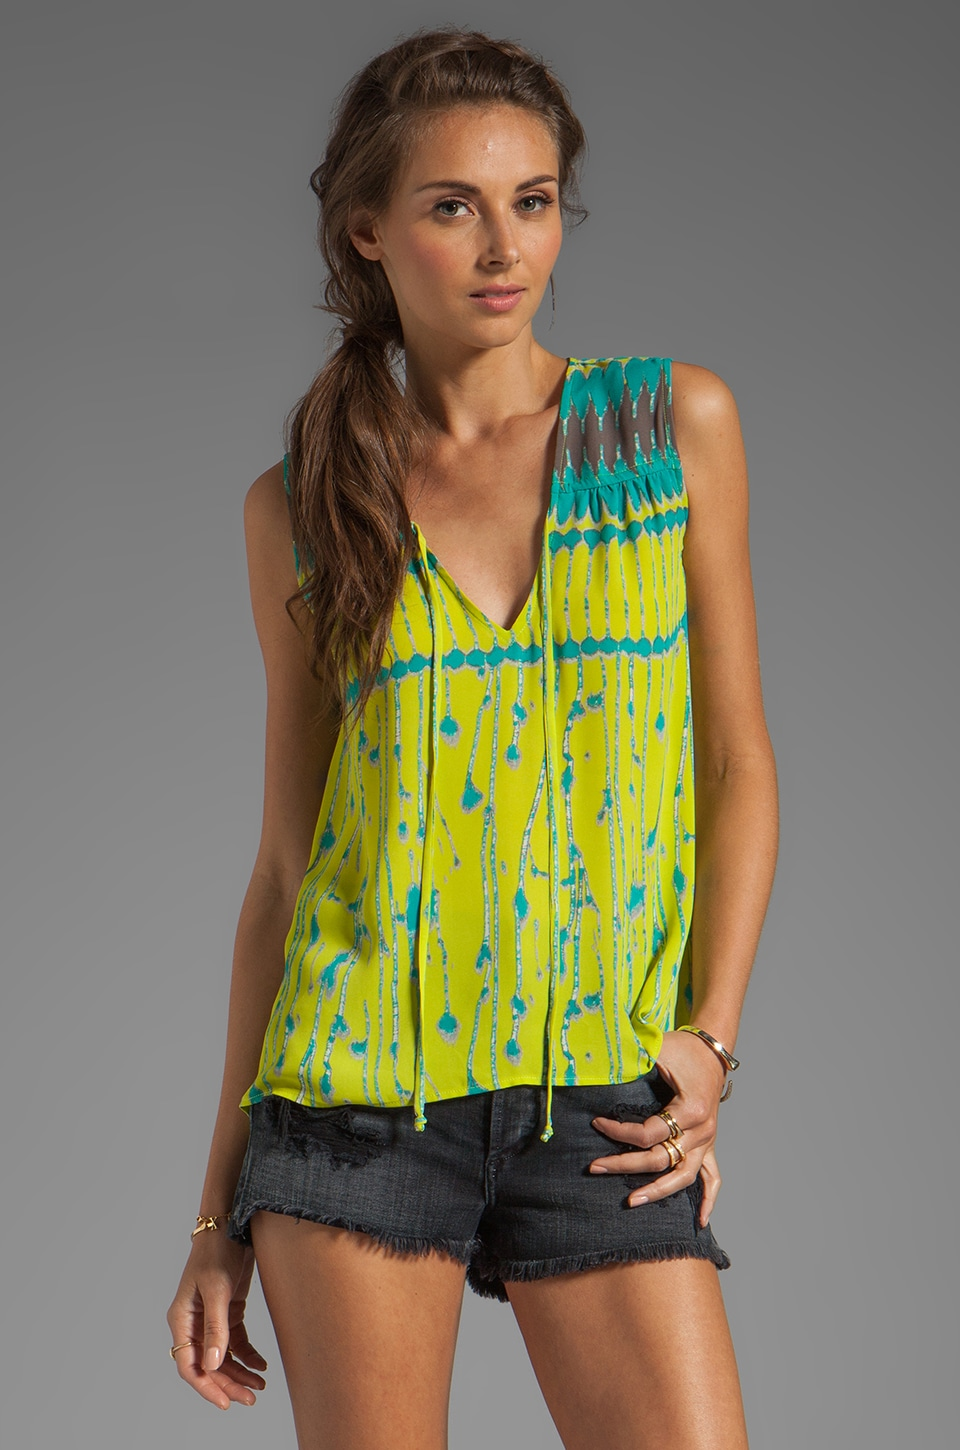 BCBGMAXAZRIA Flowy Top in Lemongrass Combo